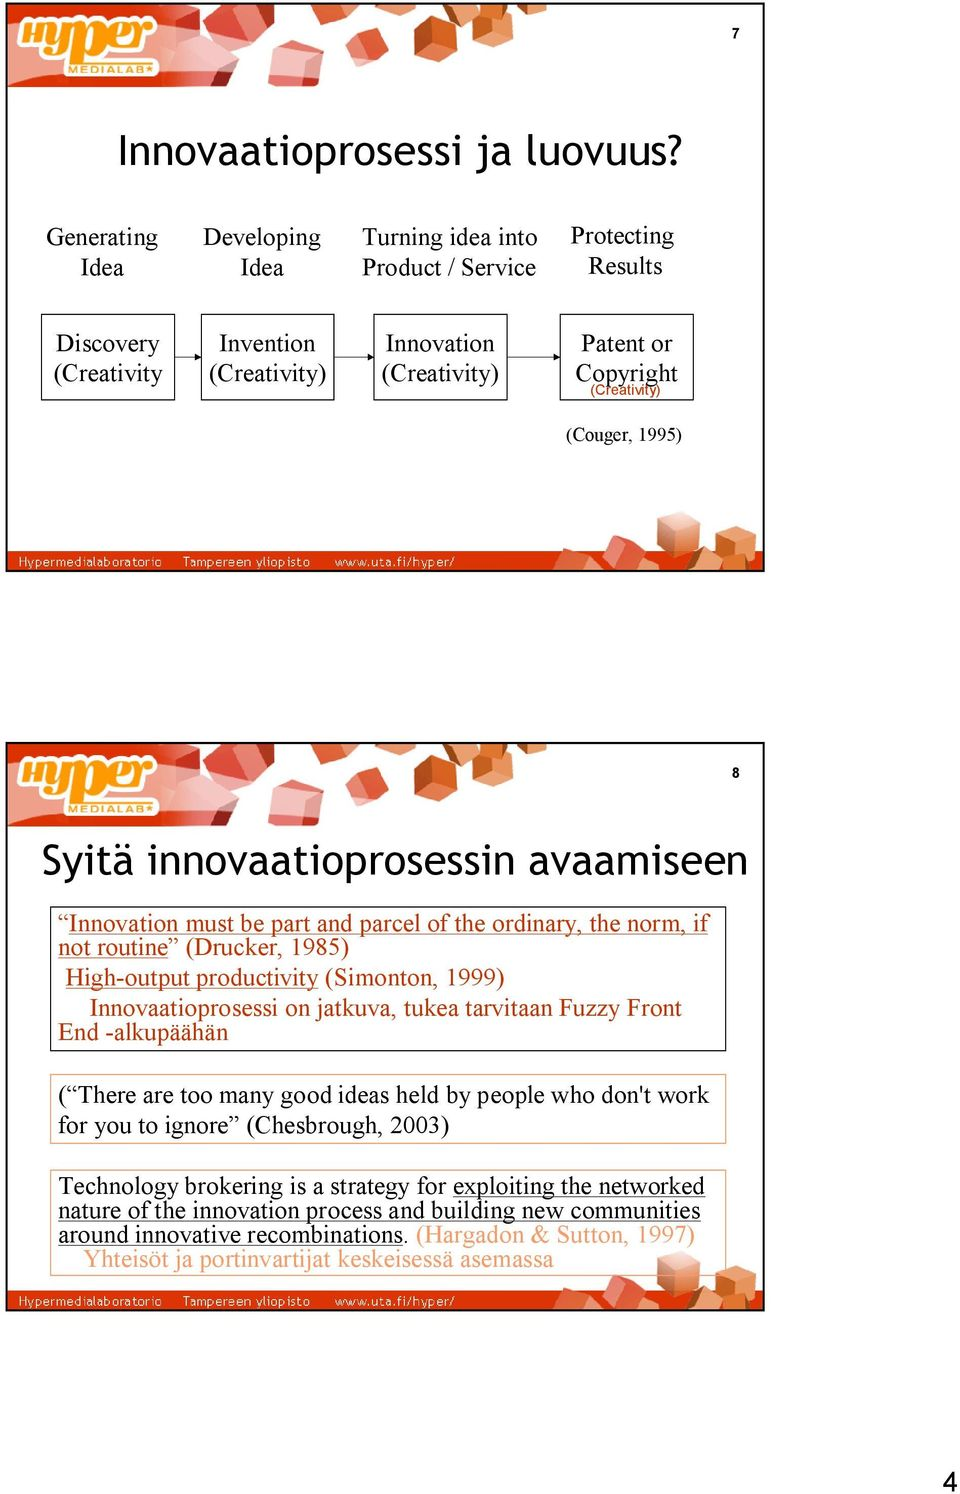 1995) 8 Syitä innovaatioprosessin avaamiseen Innovation must be part and parcel of the ordinary, the norm, if not routine (Drucker, 1985) High output productivity (Simonton, 1999) Innovaatioprosessi